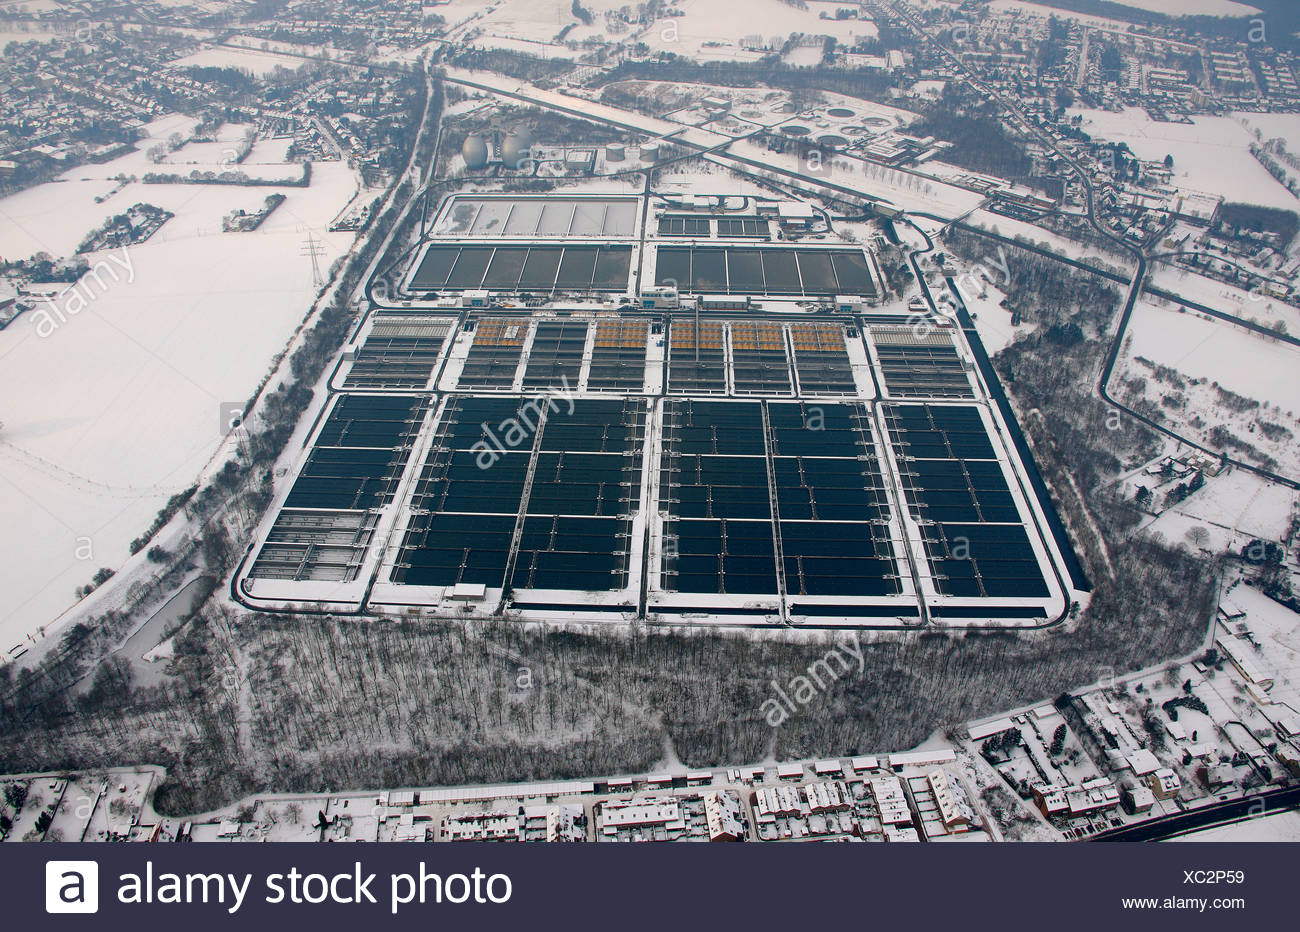 Aerial view, Emscher sewage treatment plant, Emscher river, Emscher course, Dinslaken, winter, snow, North Rhine-Westphalia, Ge - Stock Image